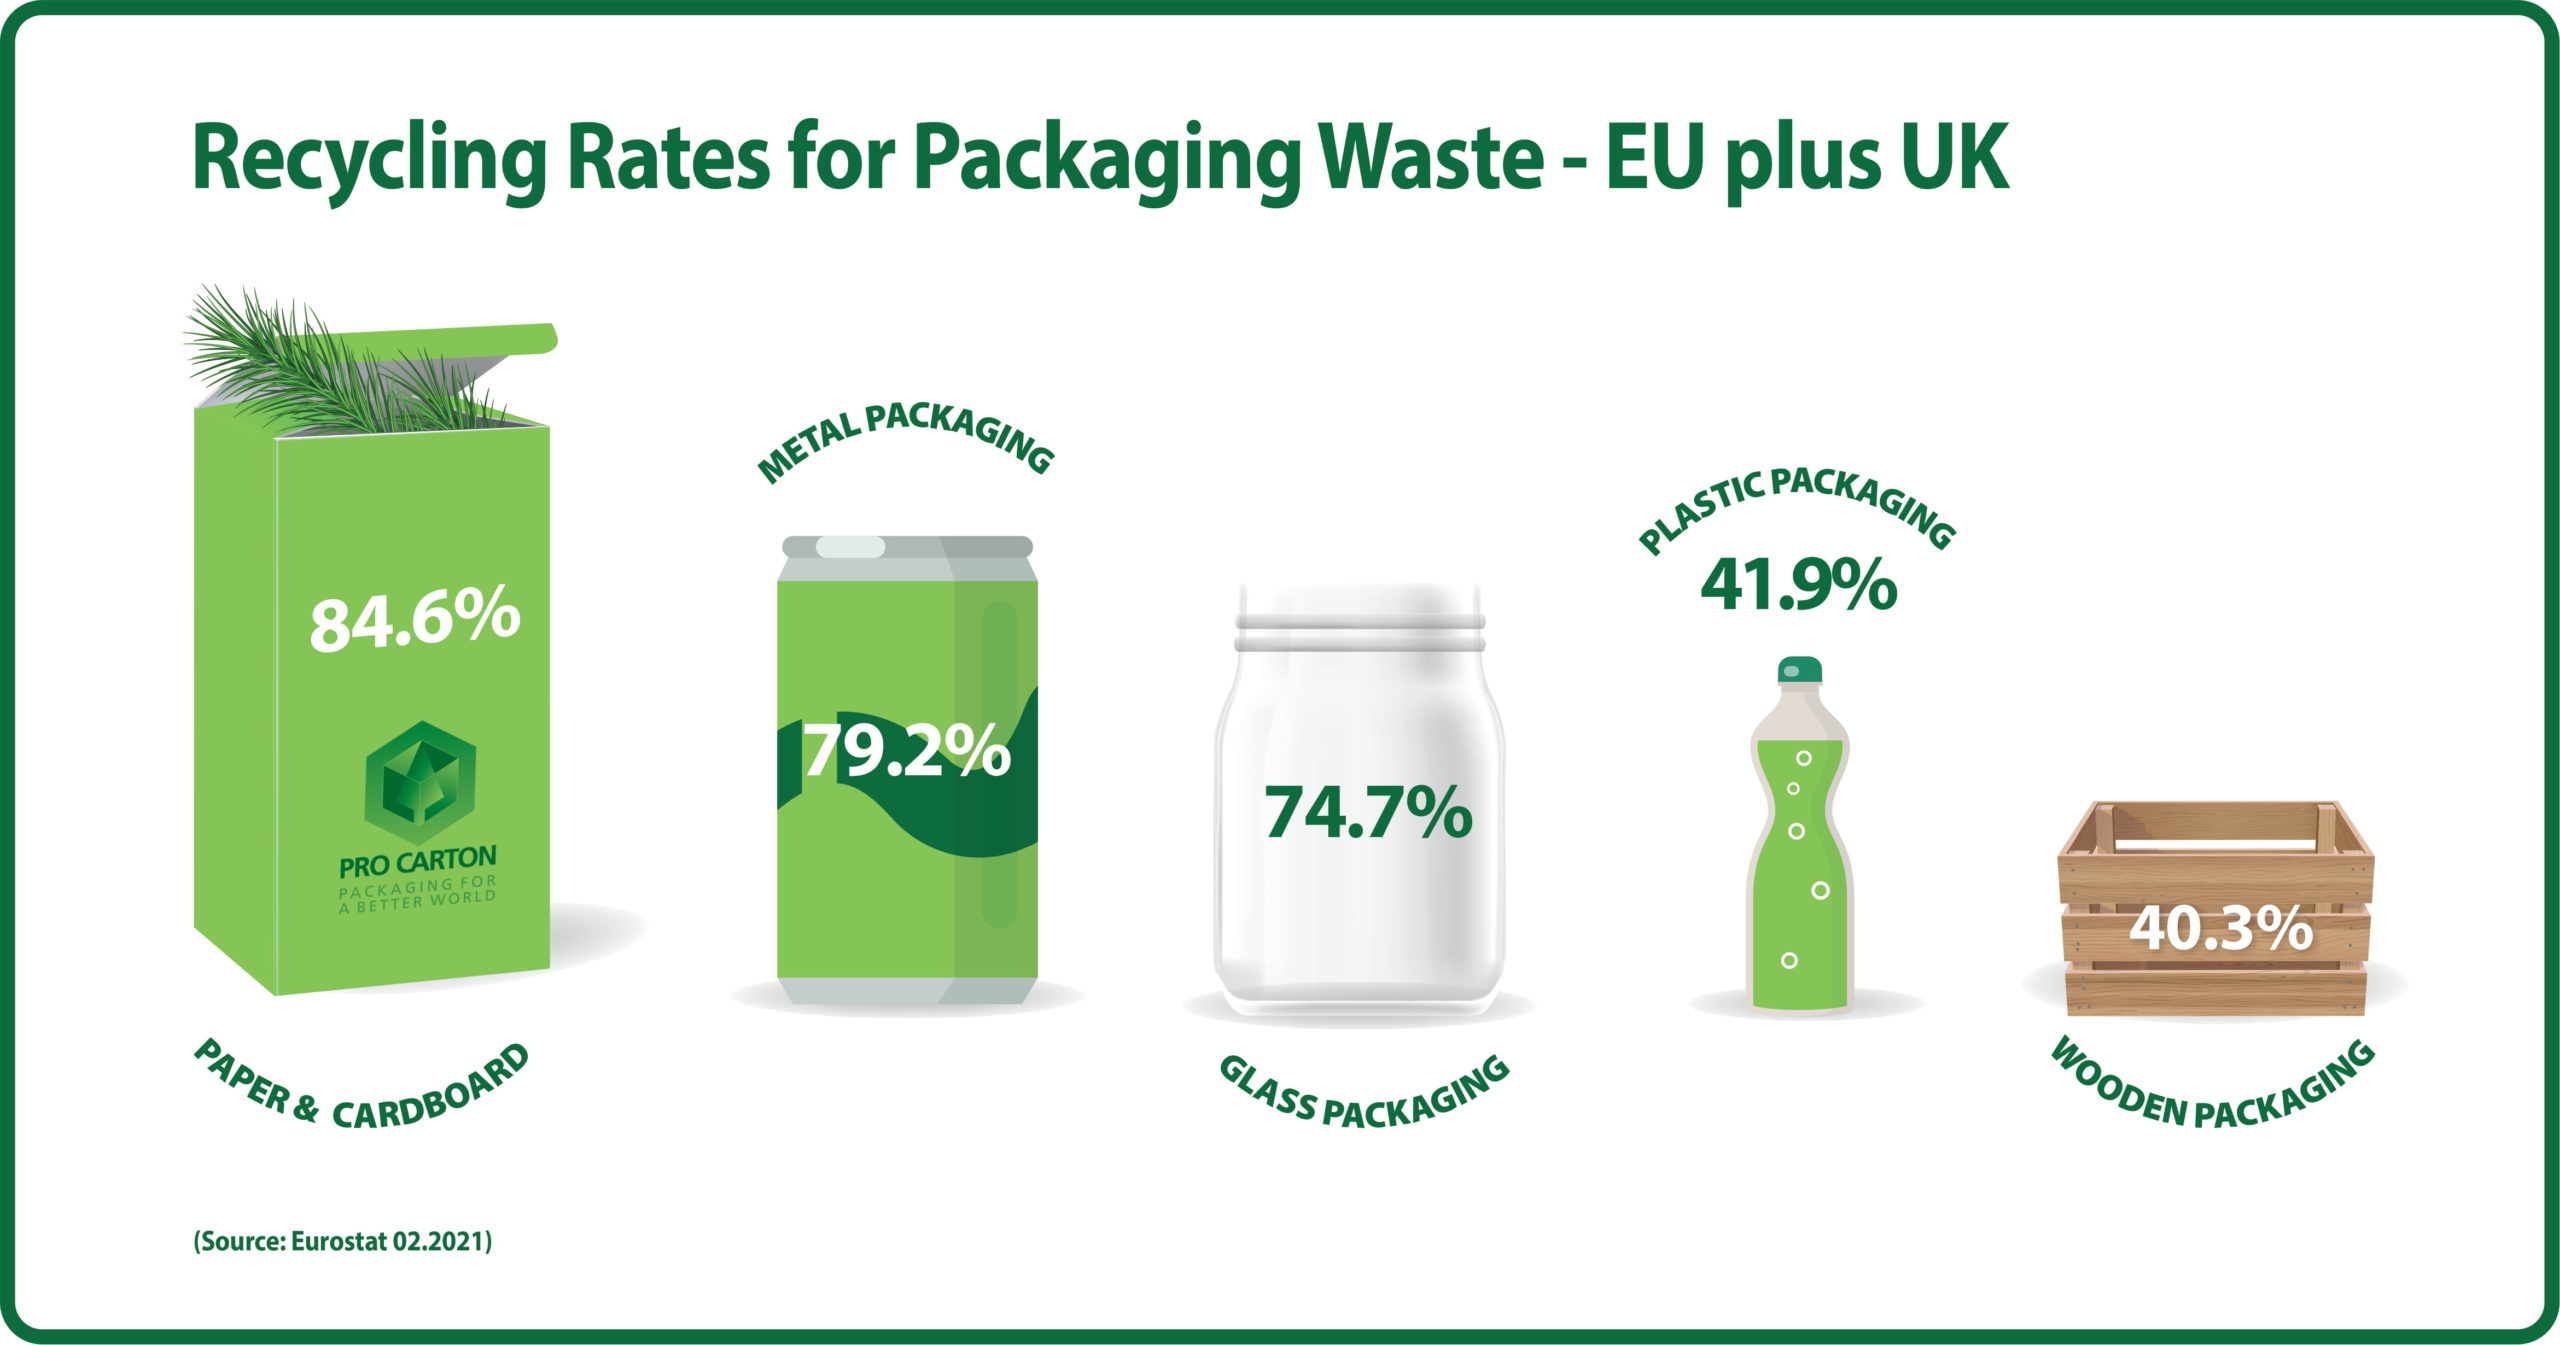 Recycling Rates for Packaging Waste Infographic